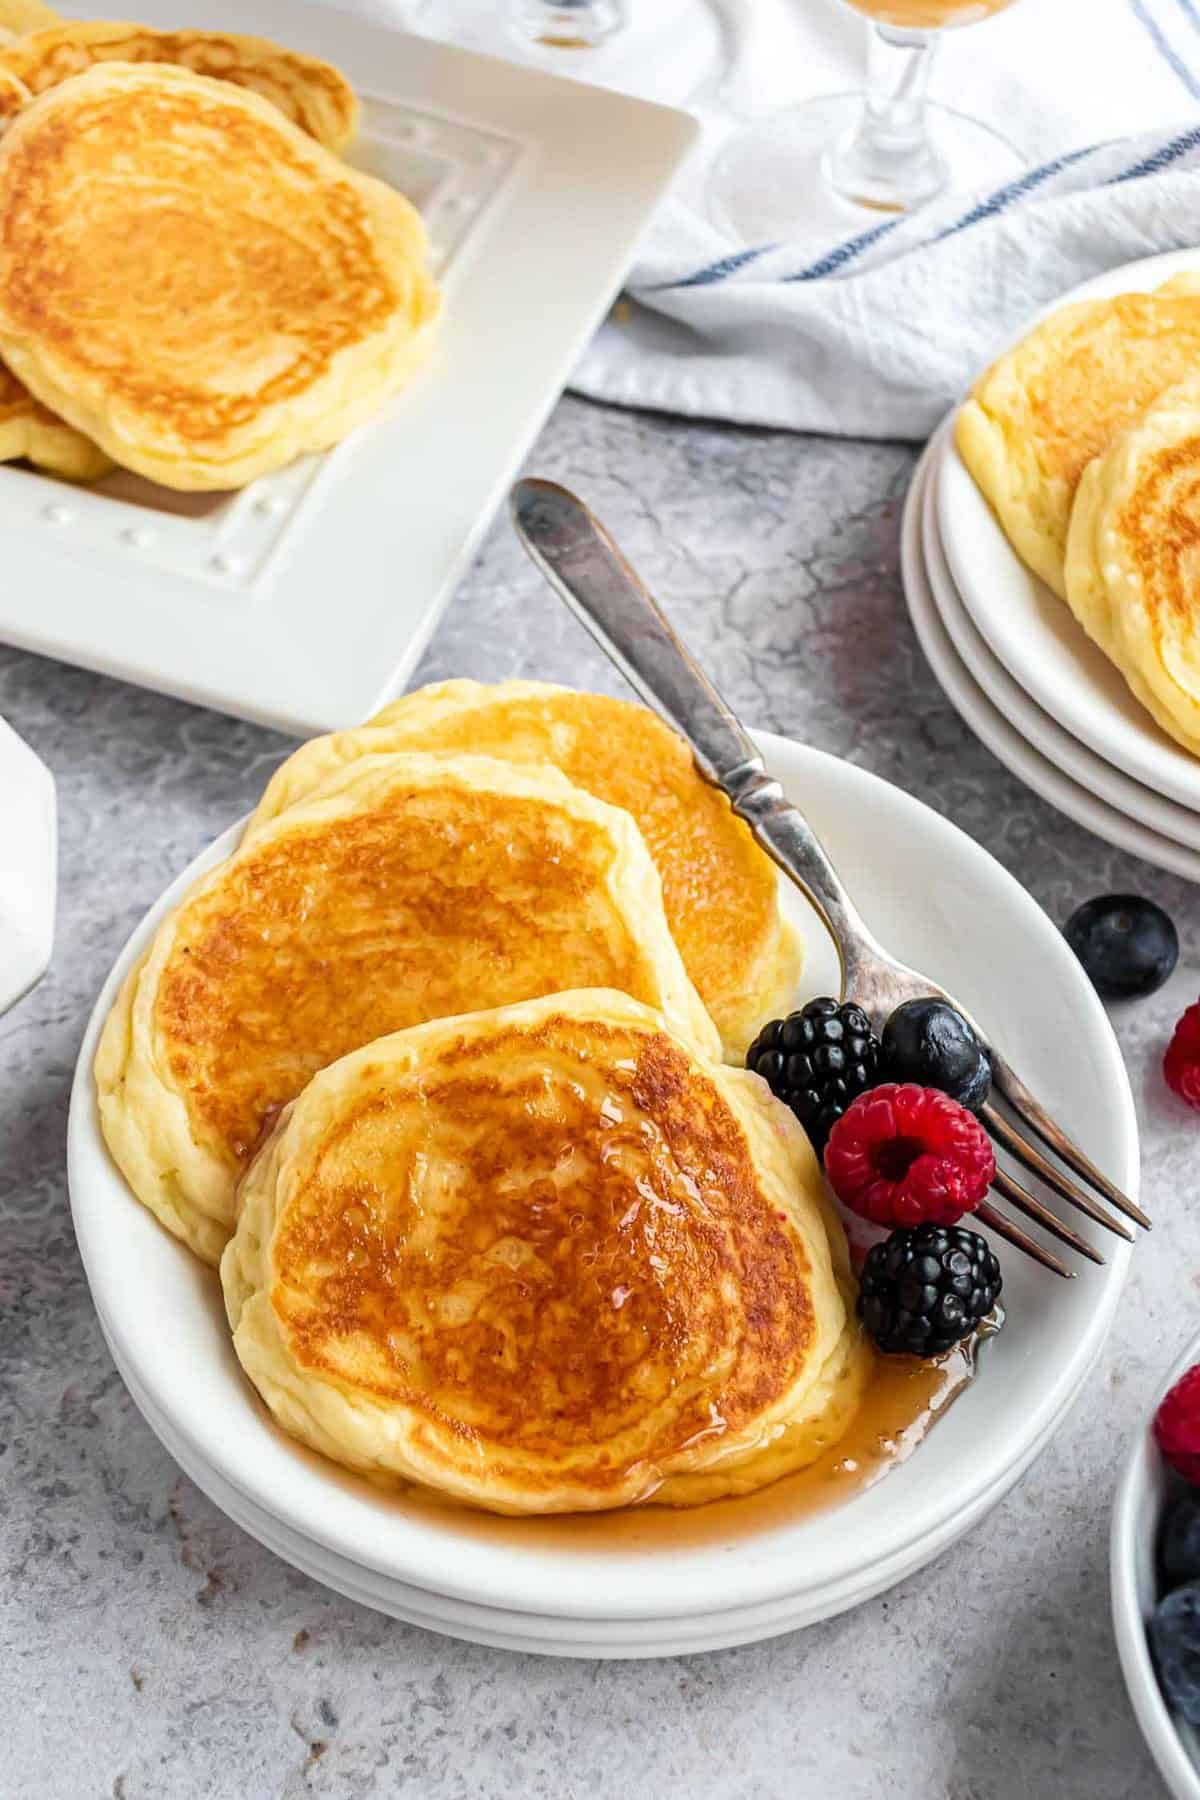 Three pancakes on a white plate with a fork, fresh berries, and syrup.